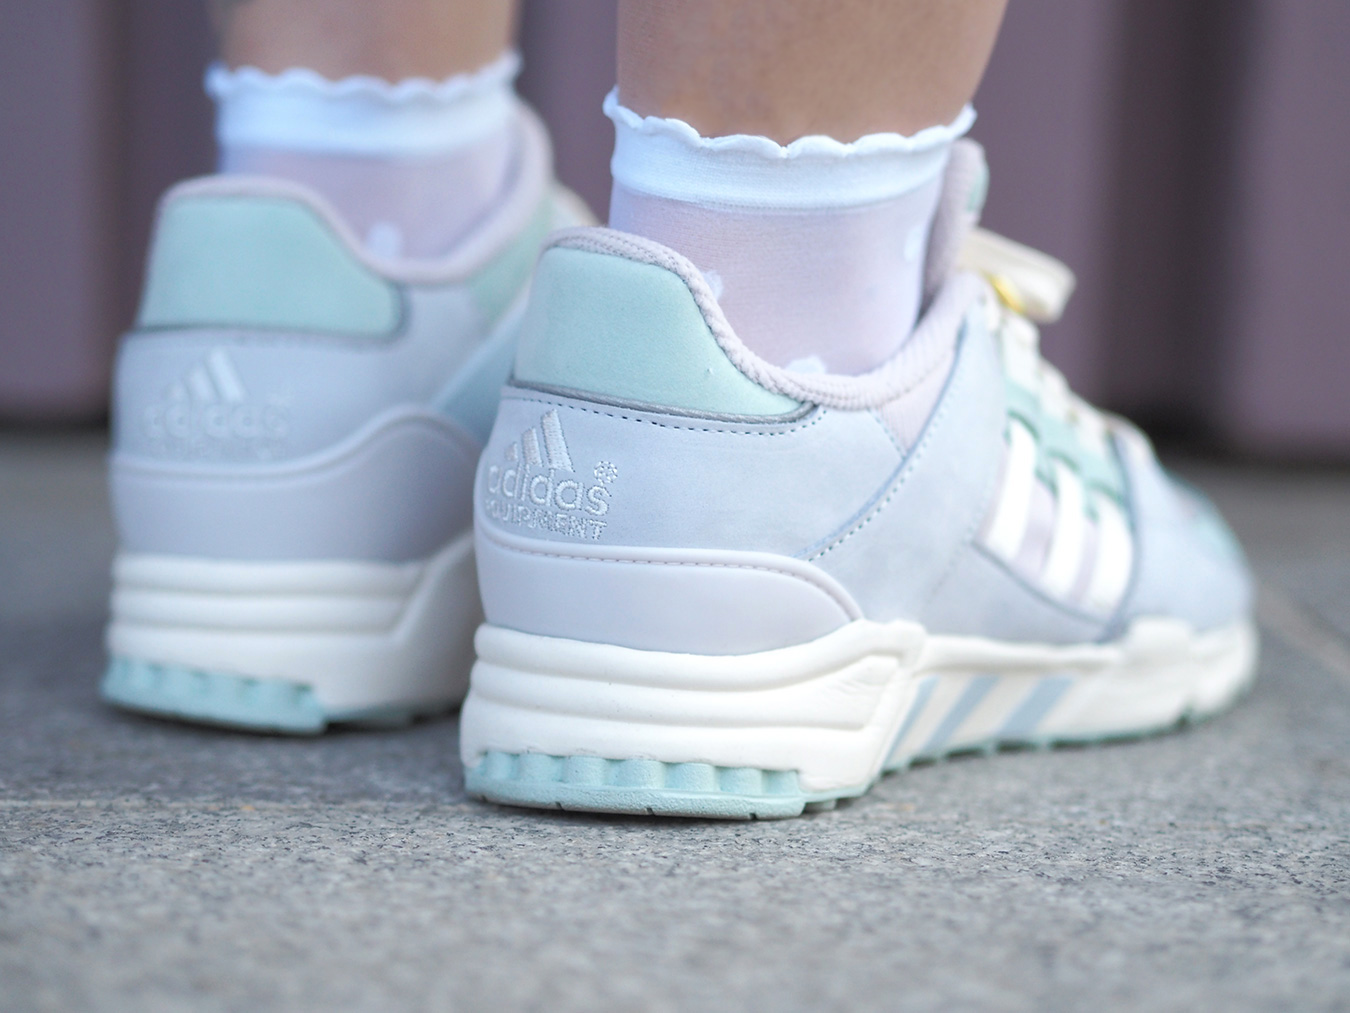 Adidas mieqt support miadidas